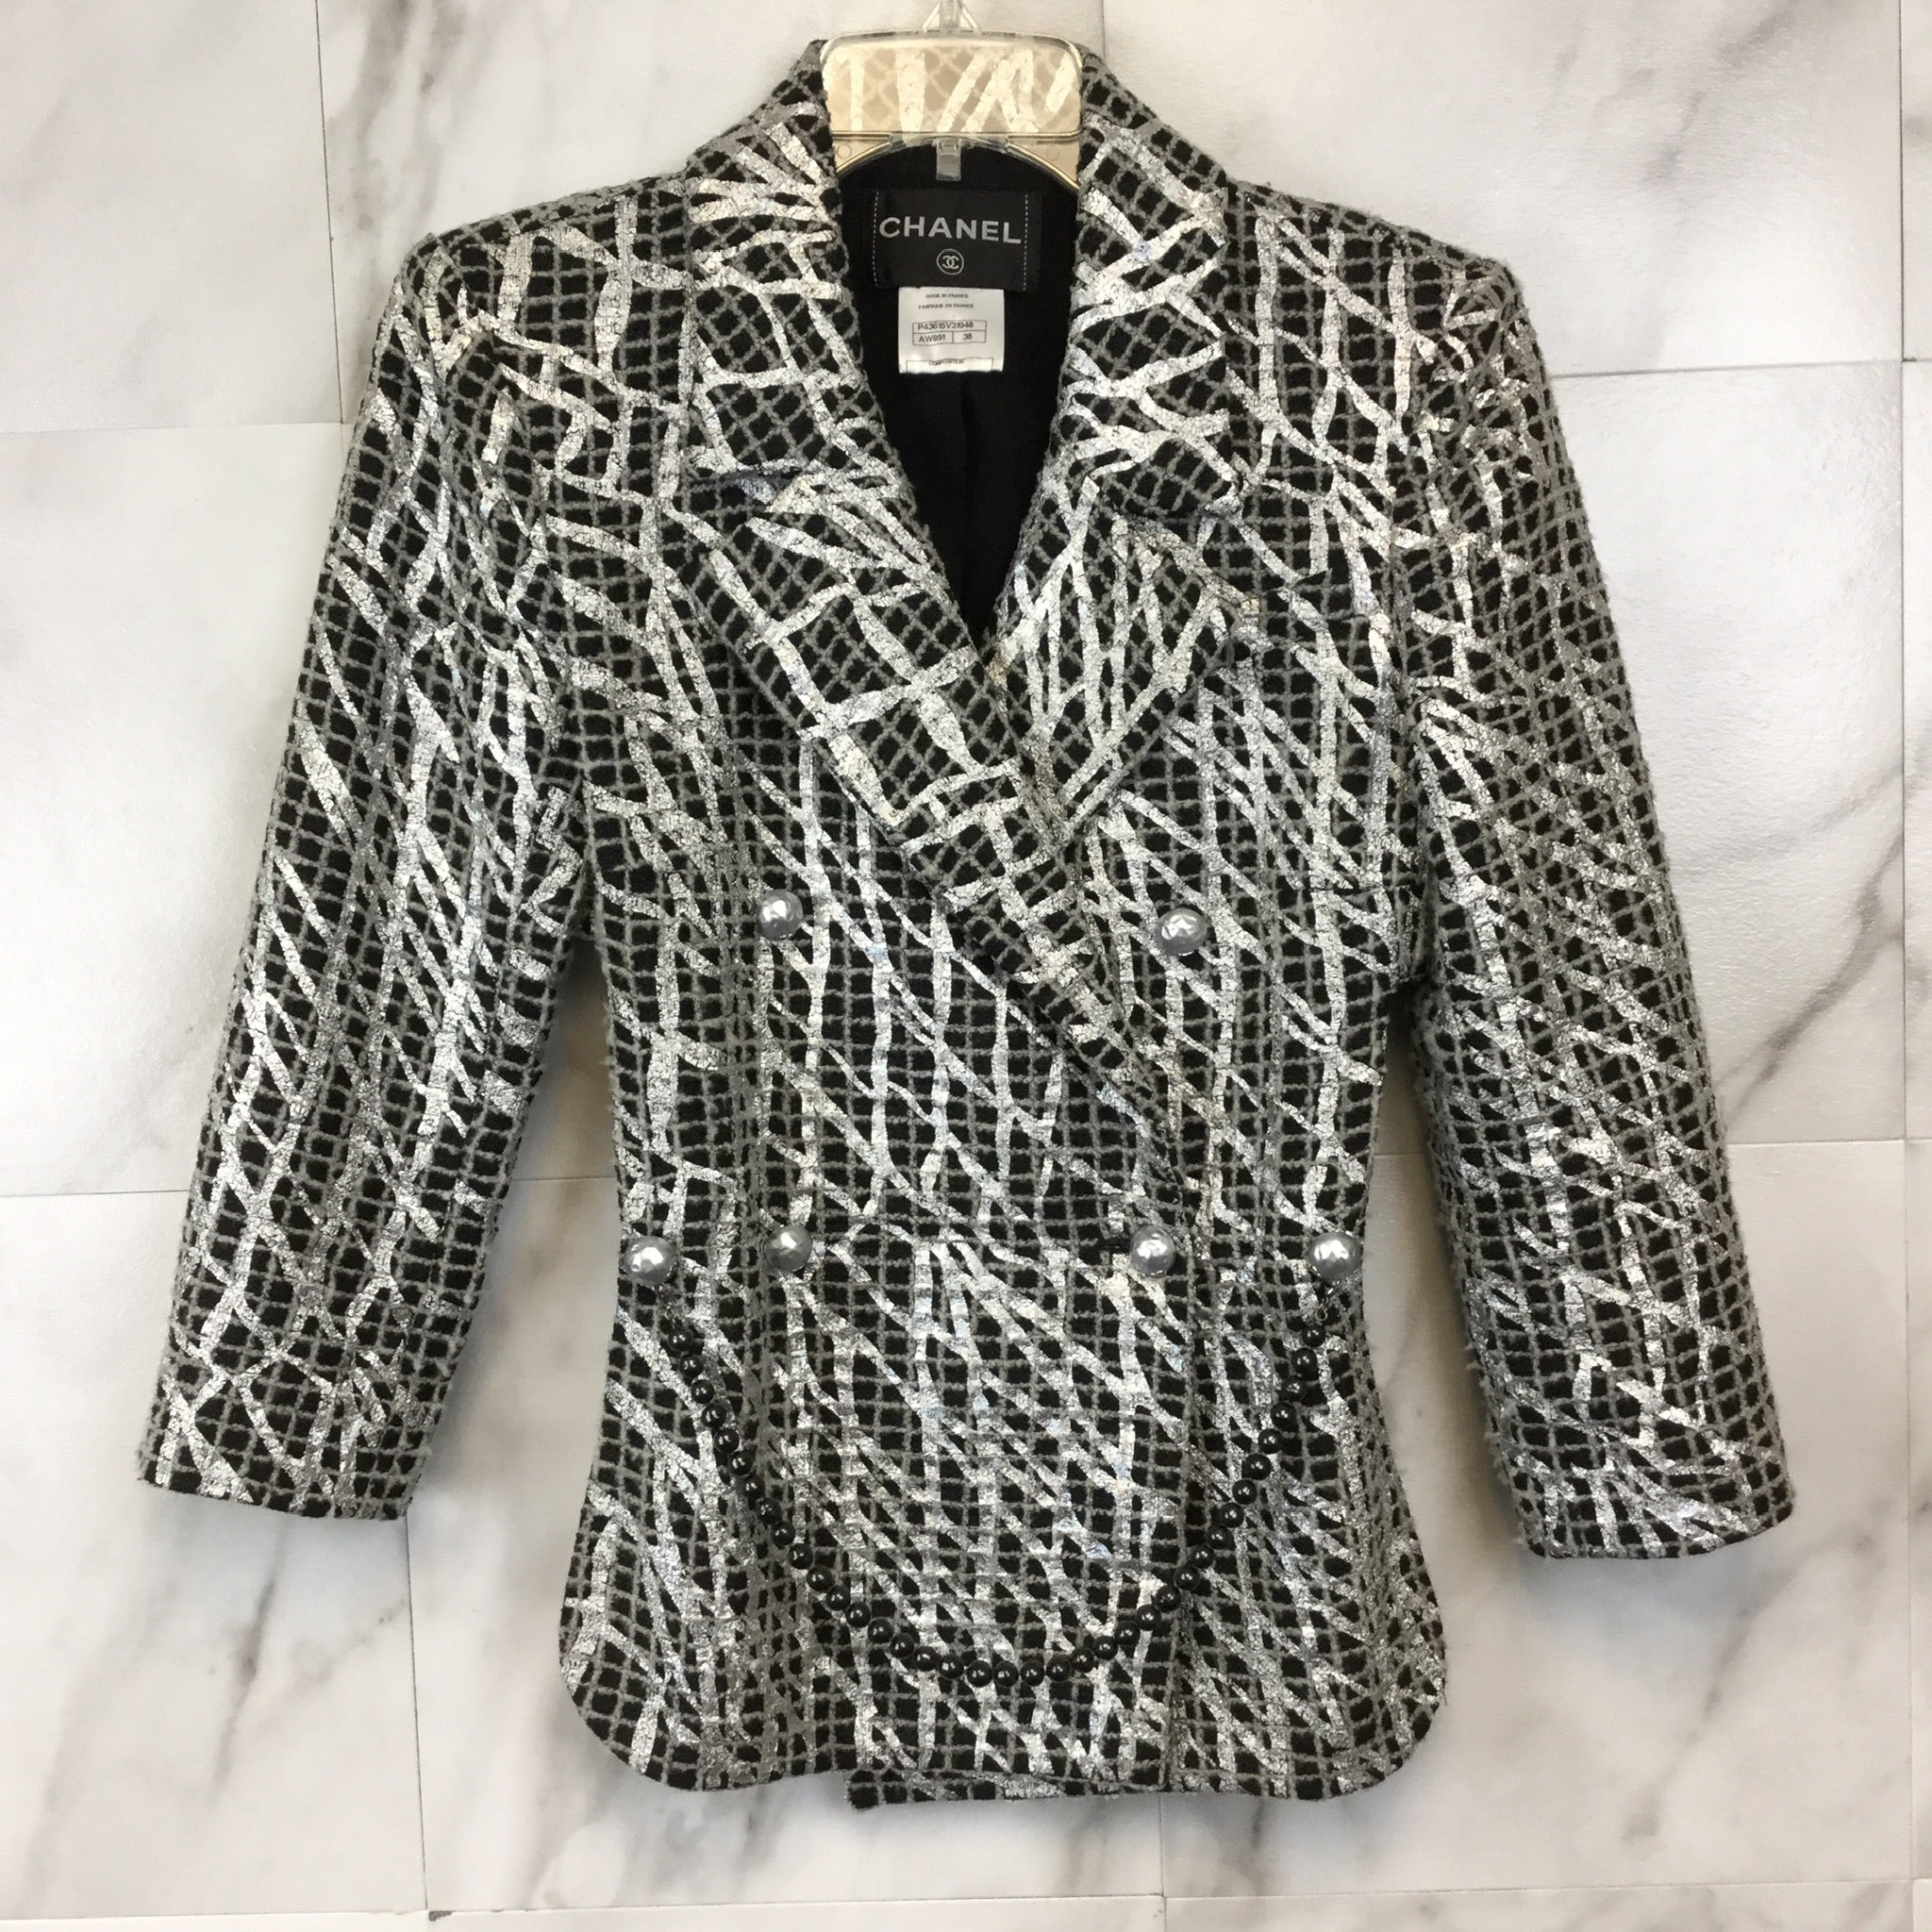 Chanel Metallic Tweed High-Low Jacket - size FR38